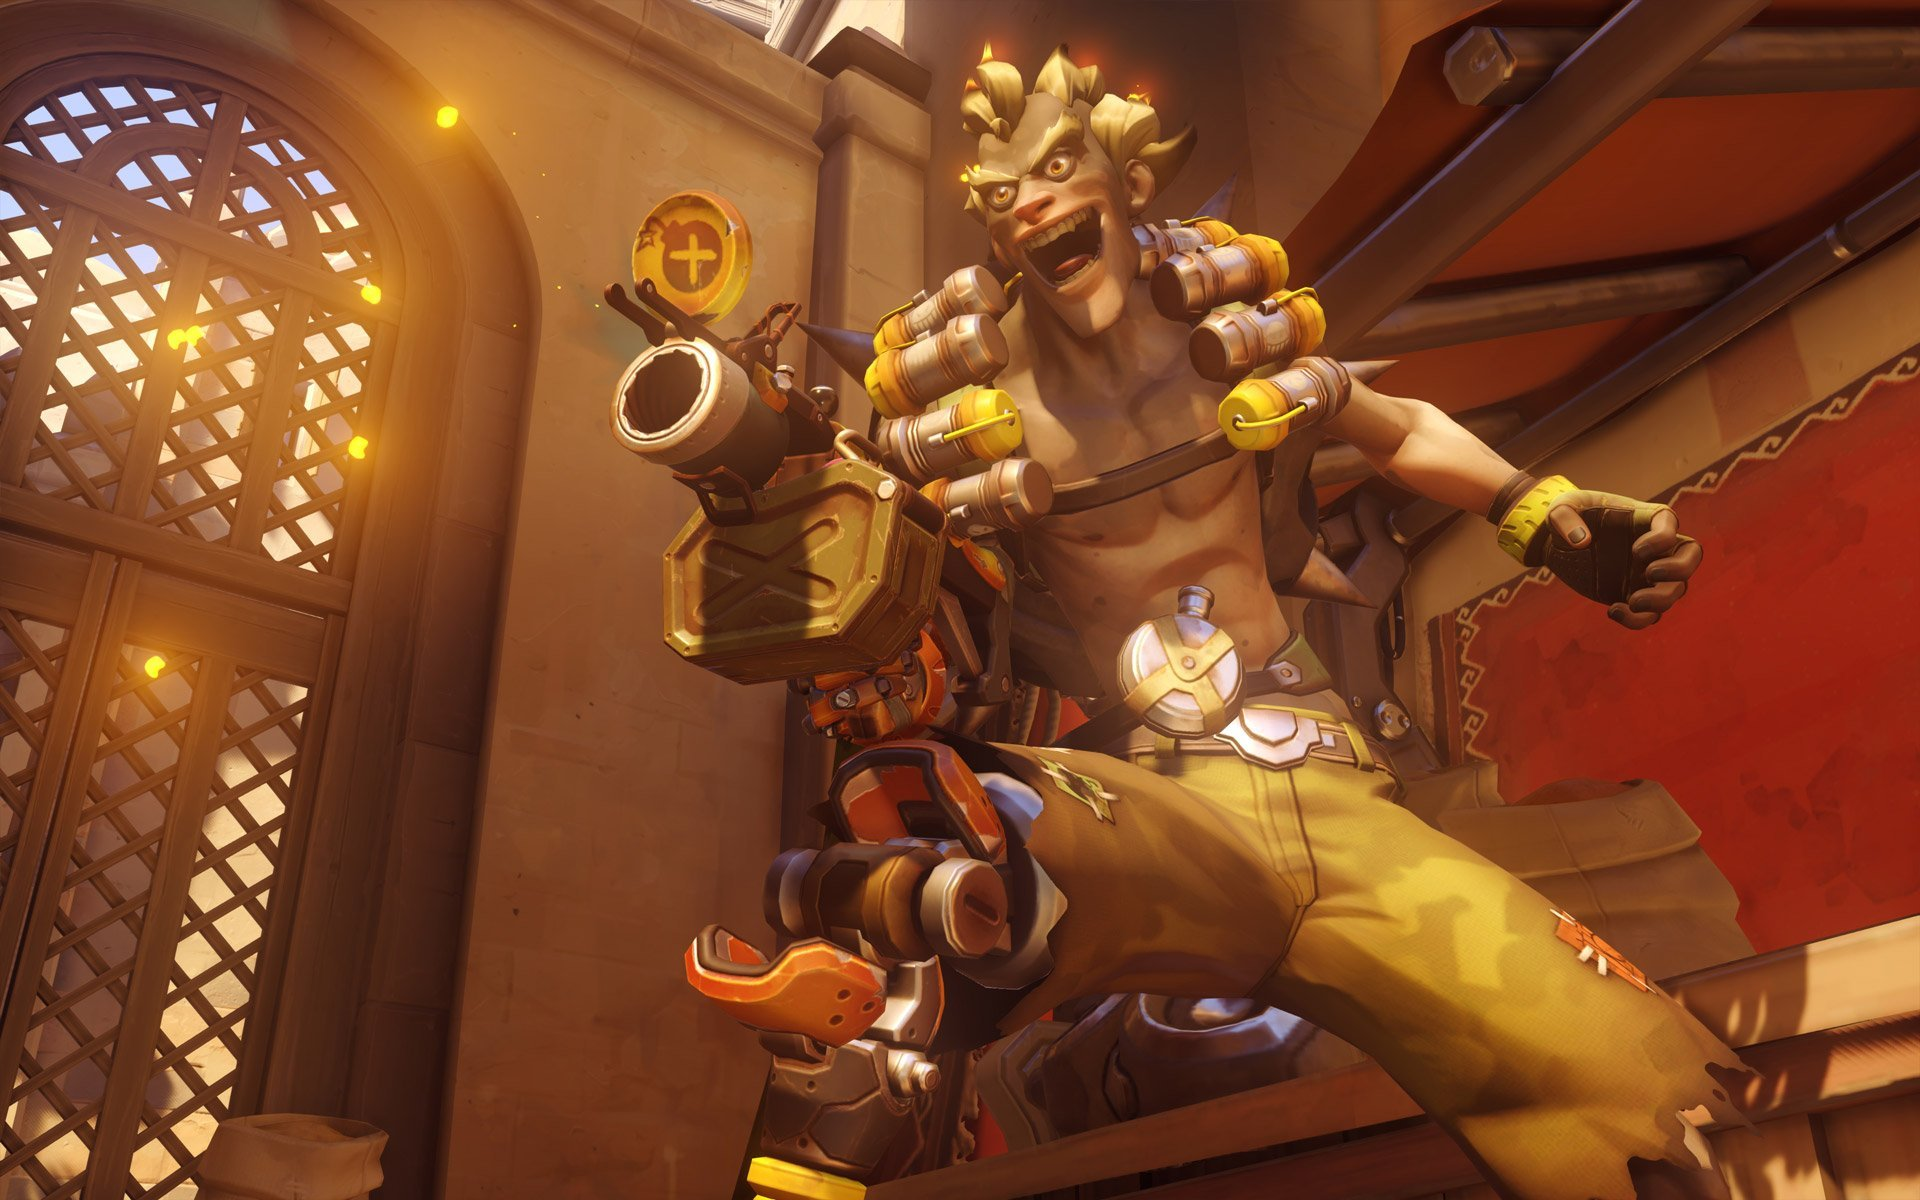 Junkrat in all his glory.